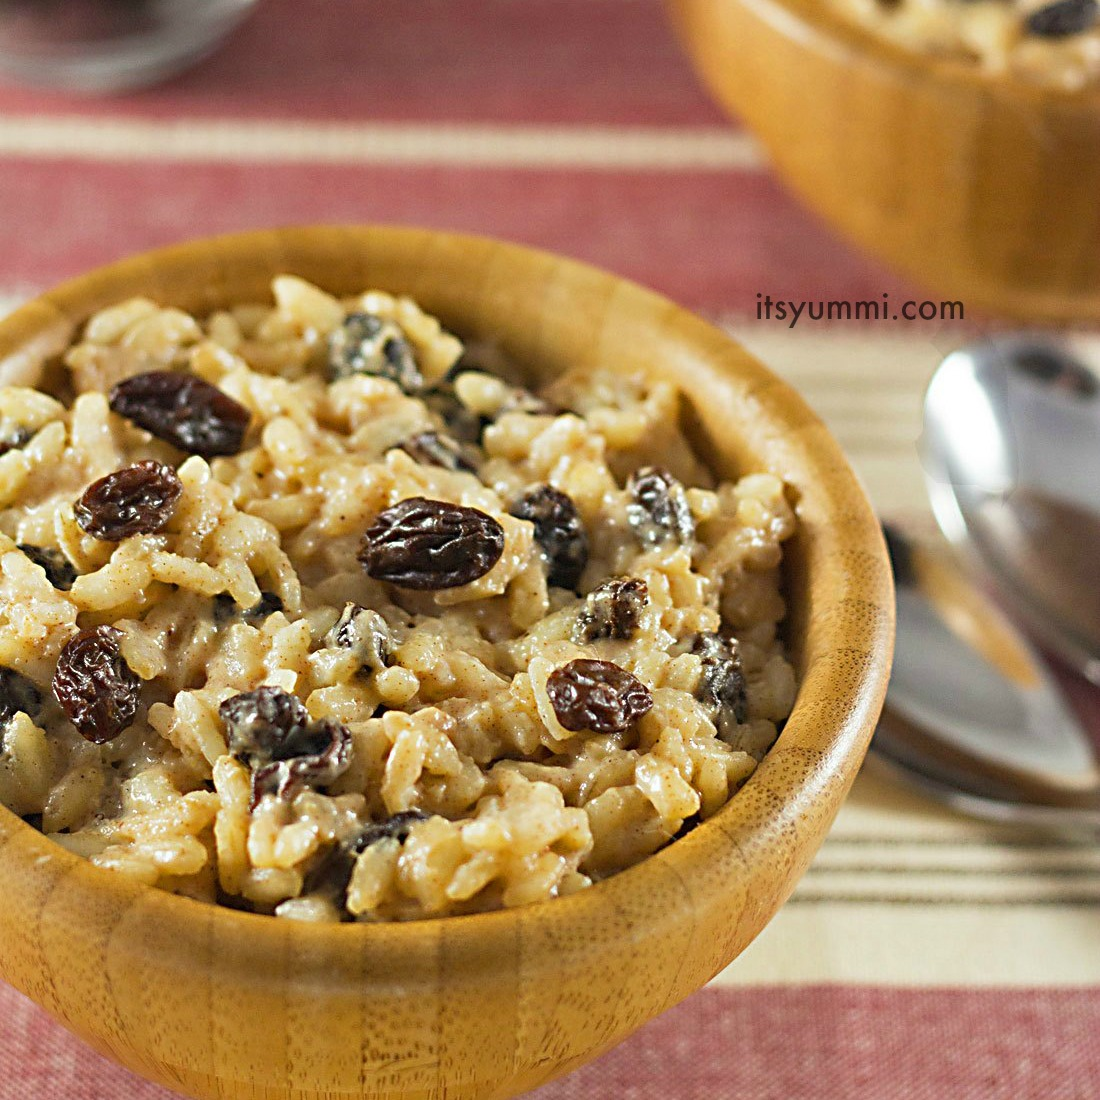 This easy eggnog-raisin rice pudding has NO added sugar! It's naturally sweet, making it a great holiday dessert. Recipe on ItsYummi.com